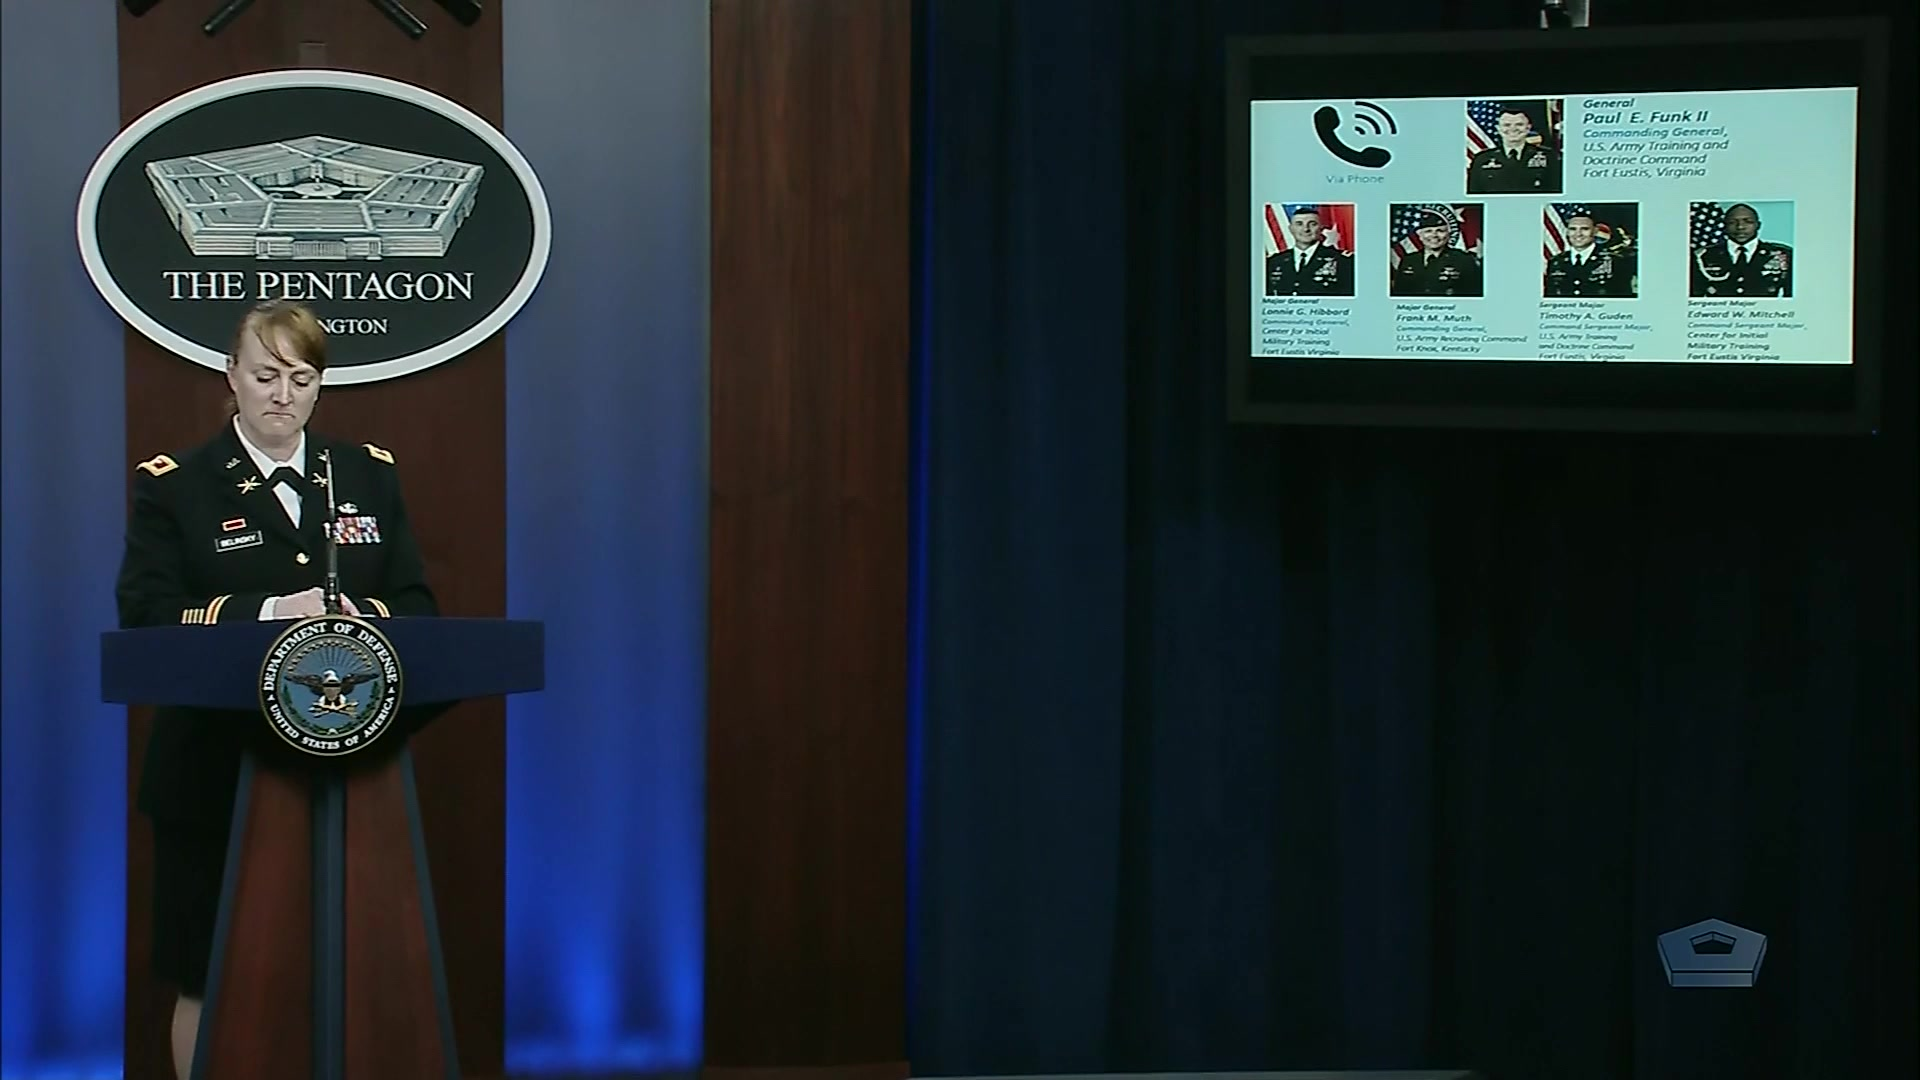 A service member stands at a lectern with a screen behind her.